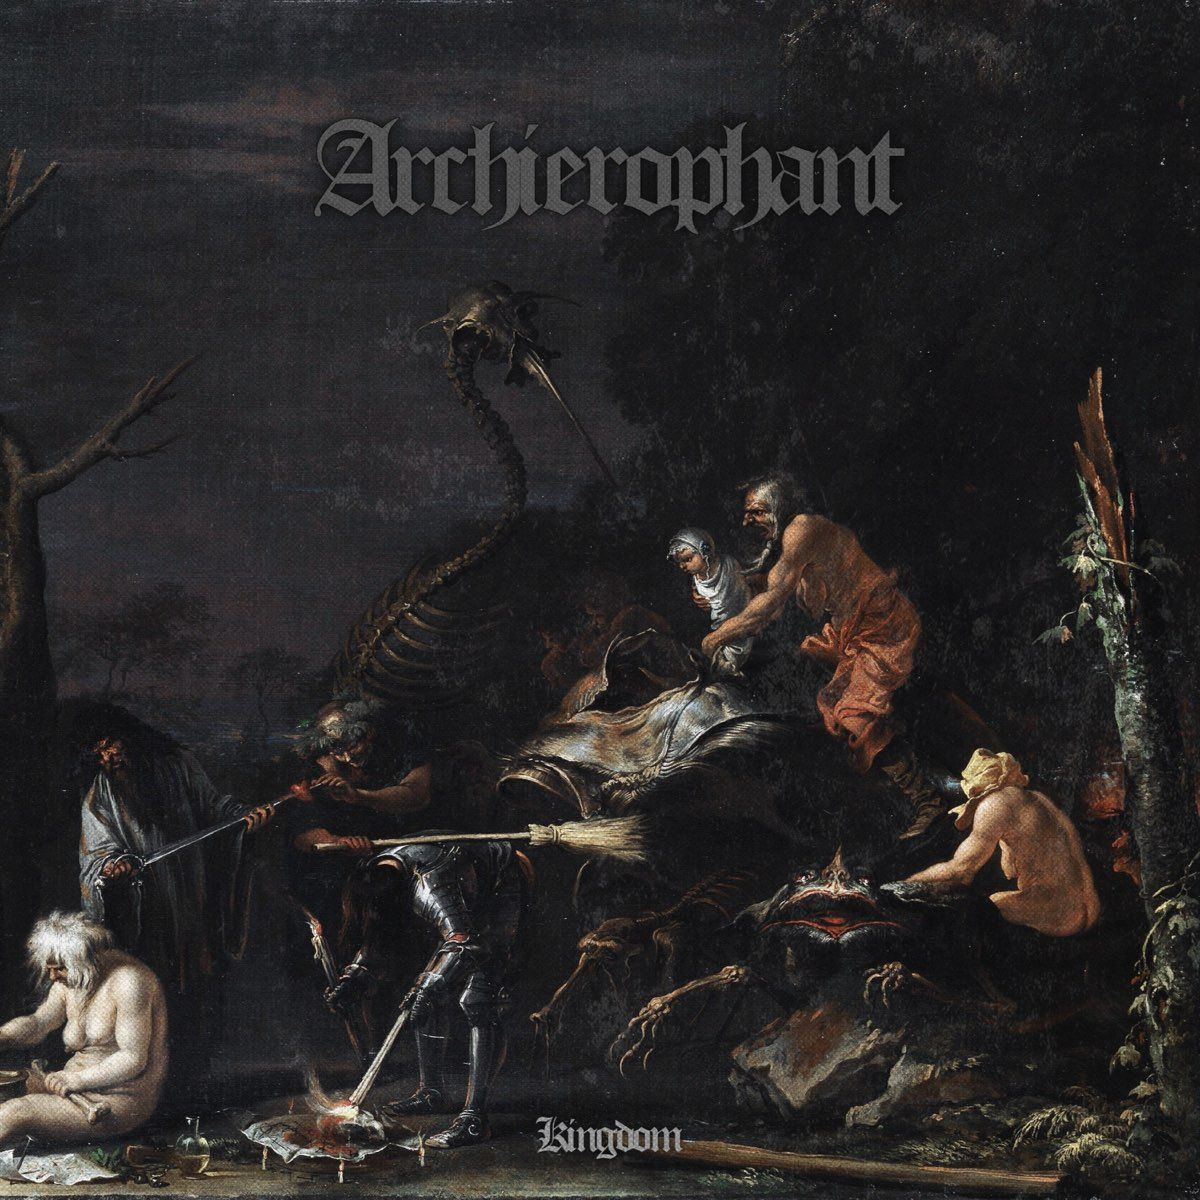 Review for Archierophant - Kingdom